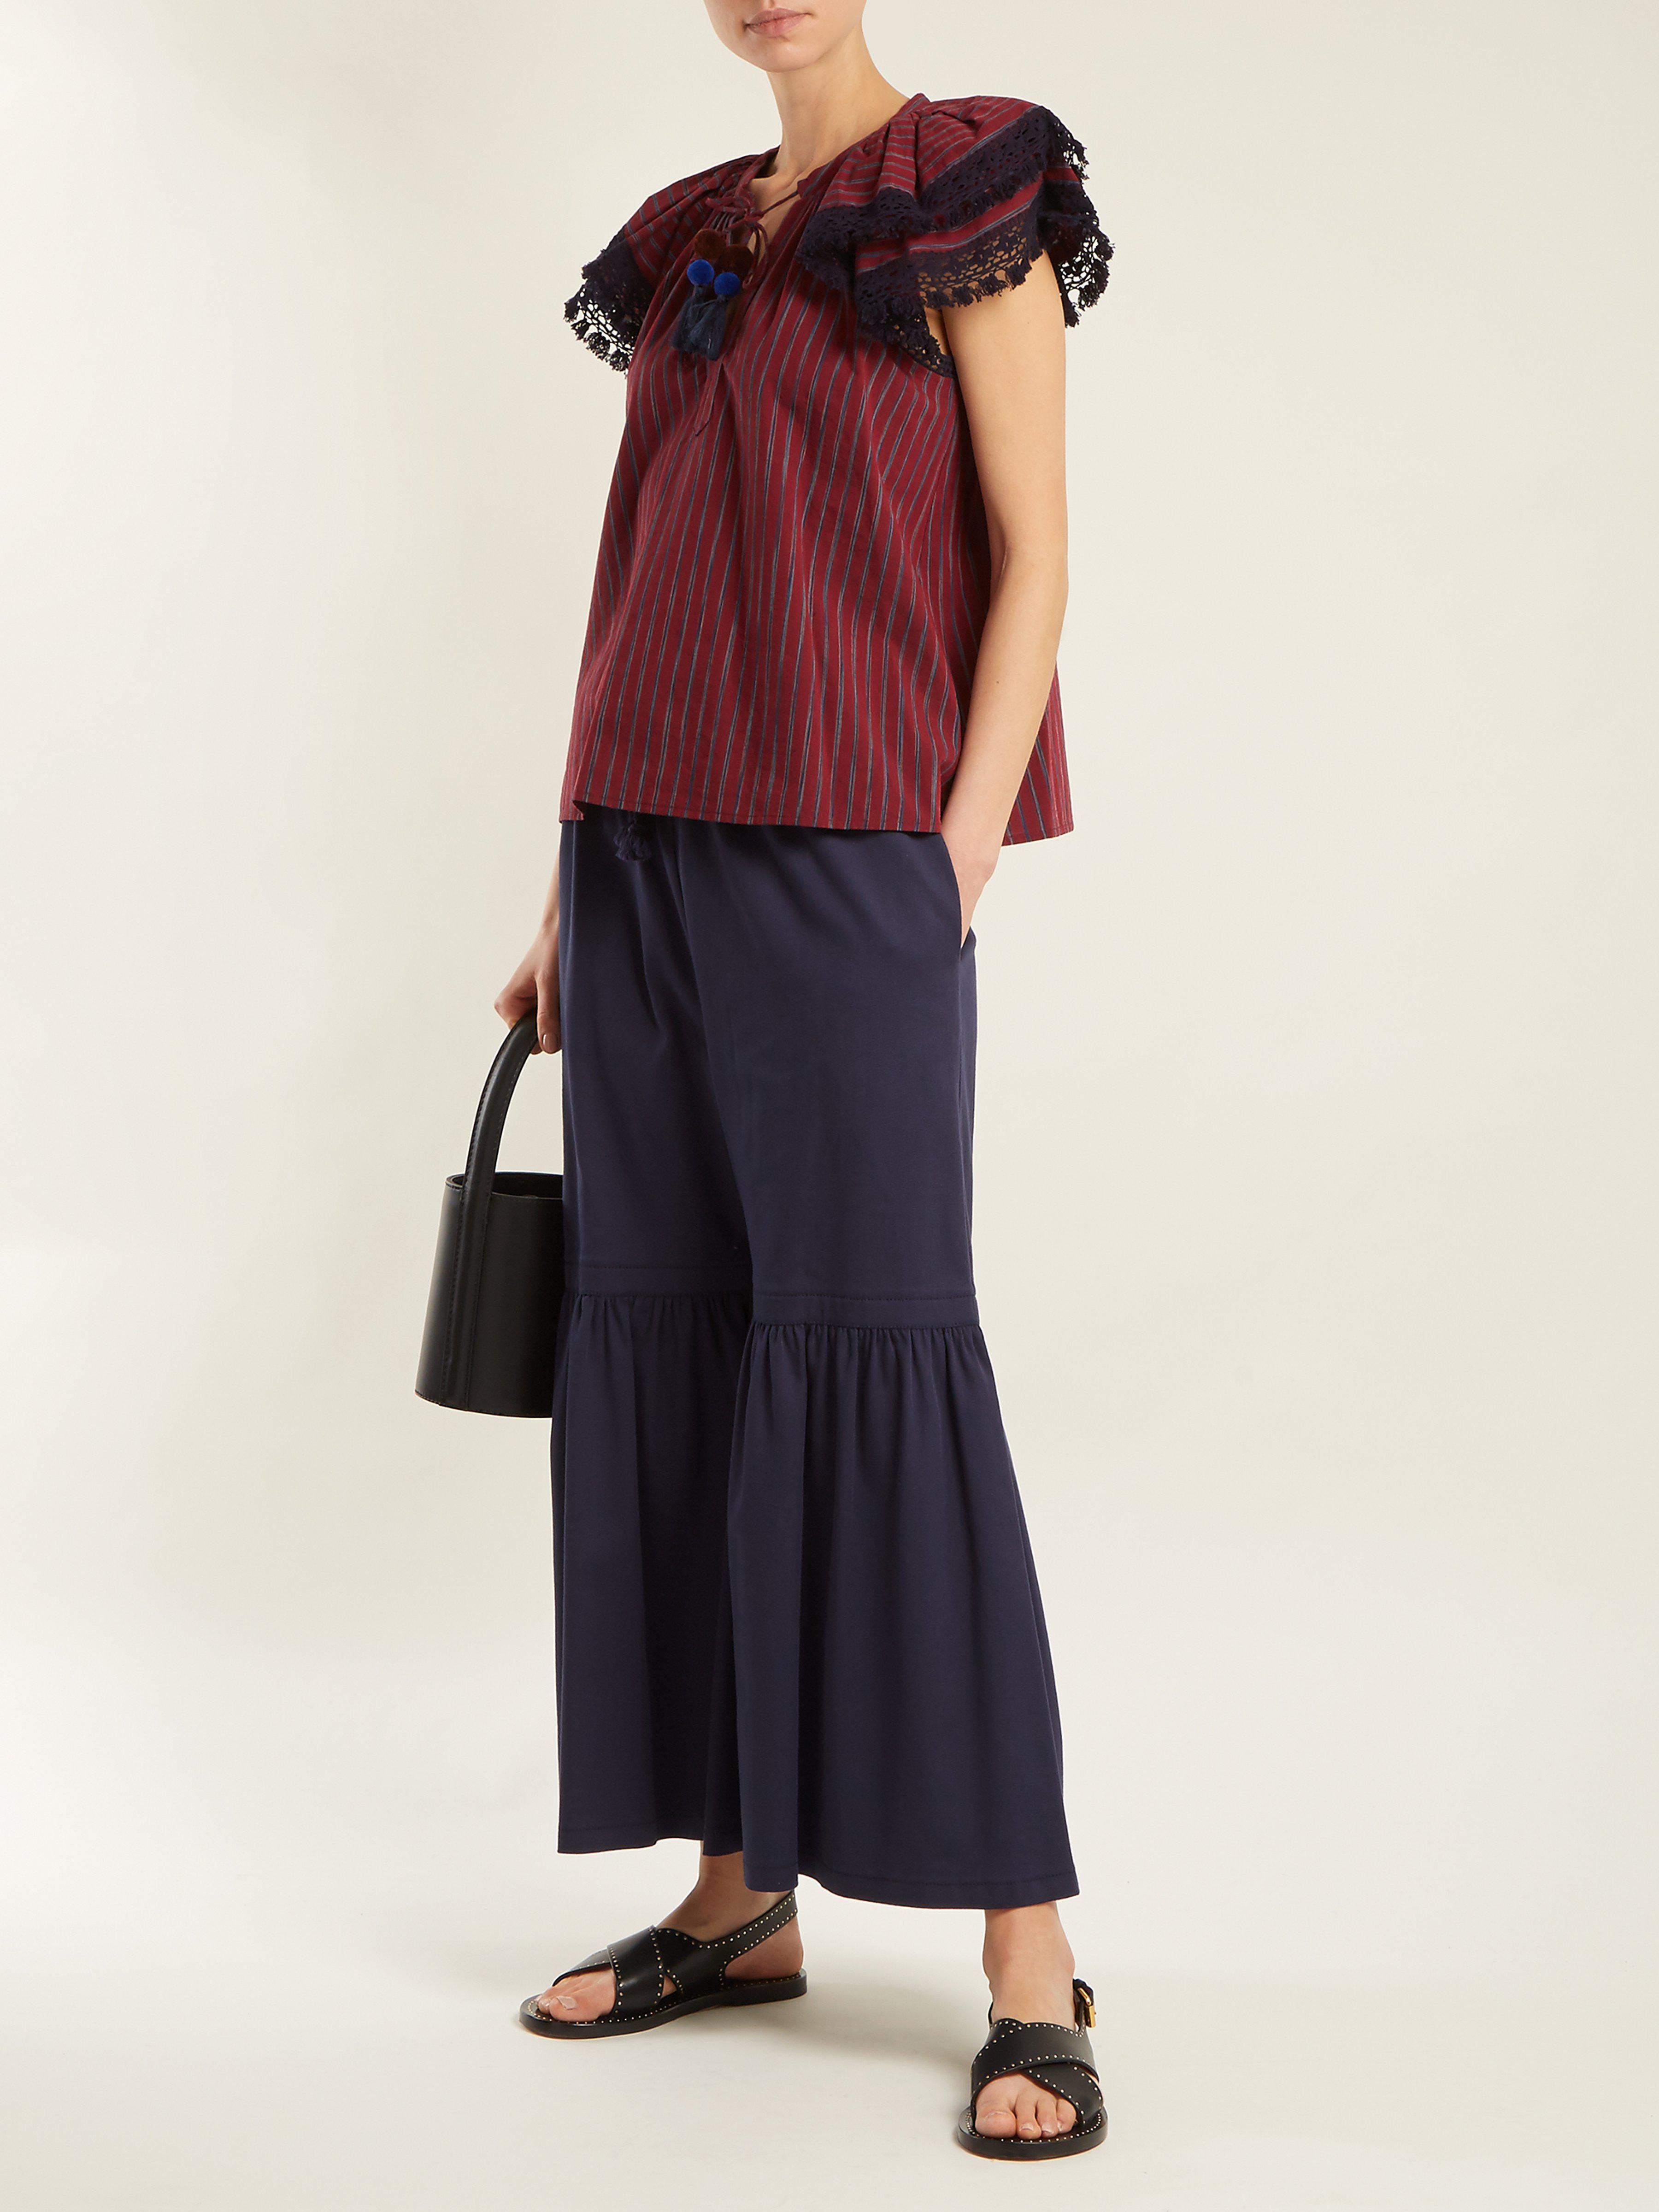 Sea Cotton Ines Ruffle-trimmed Striped Top in Burgundy (Red)